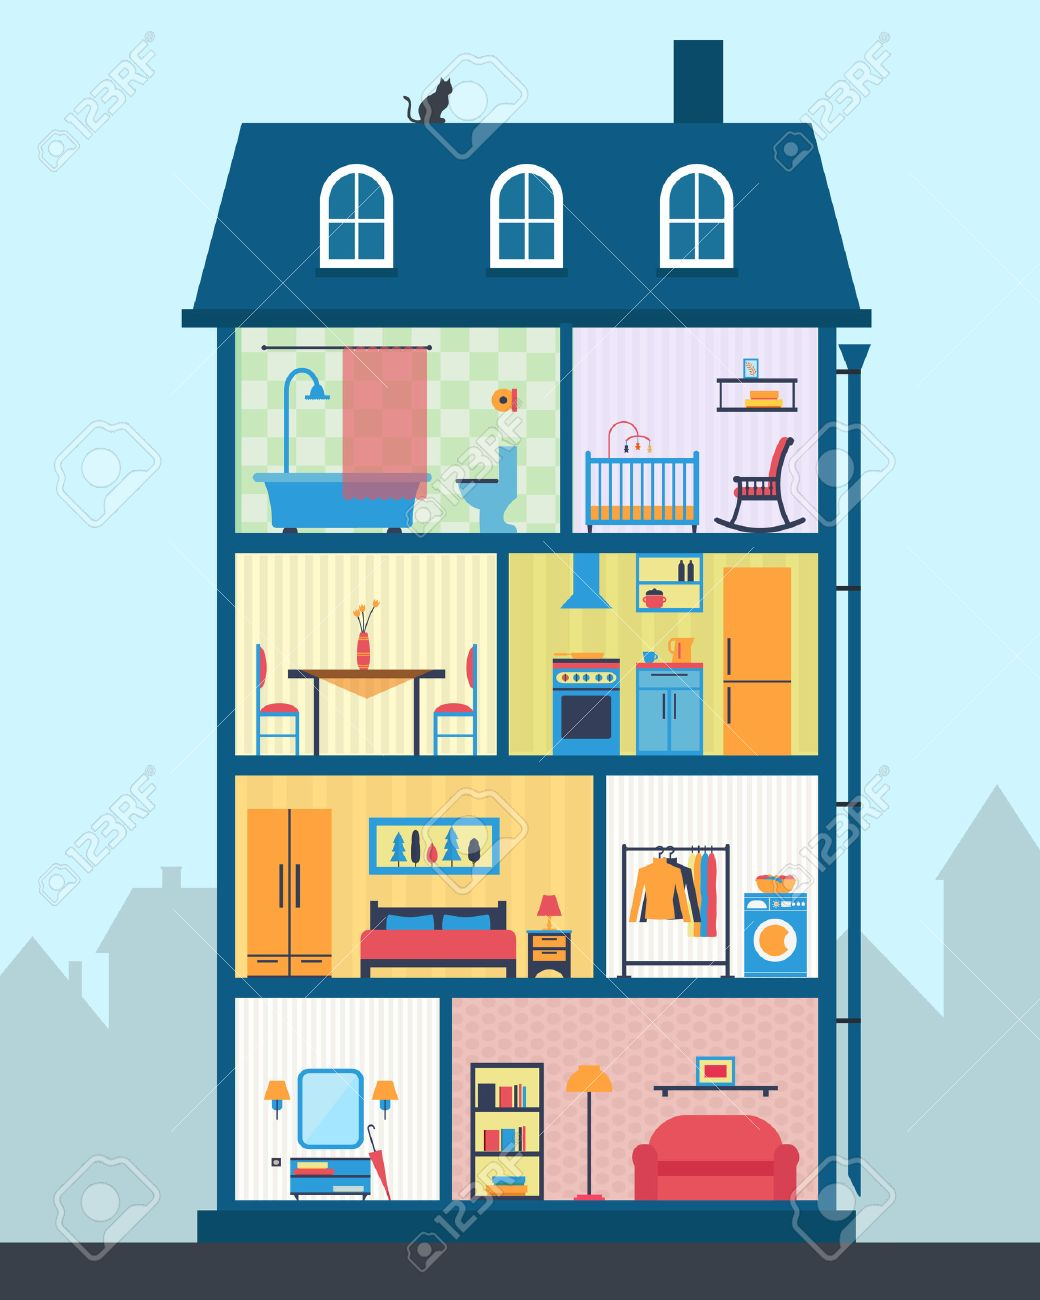 All rooms in the house rooms of homes vector art image illustration - House In Cut Detailed Modern House Interior Rooms With Furniture Flat Style Vector